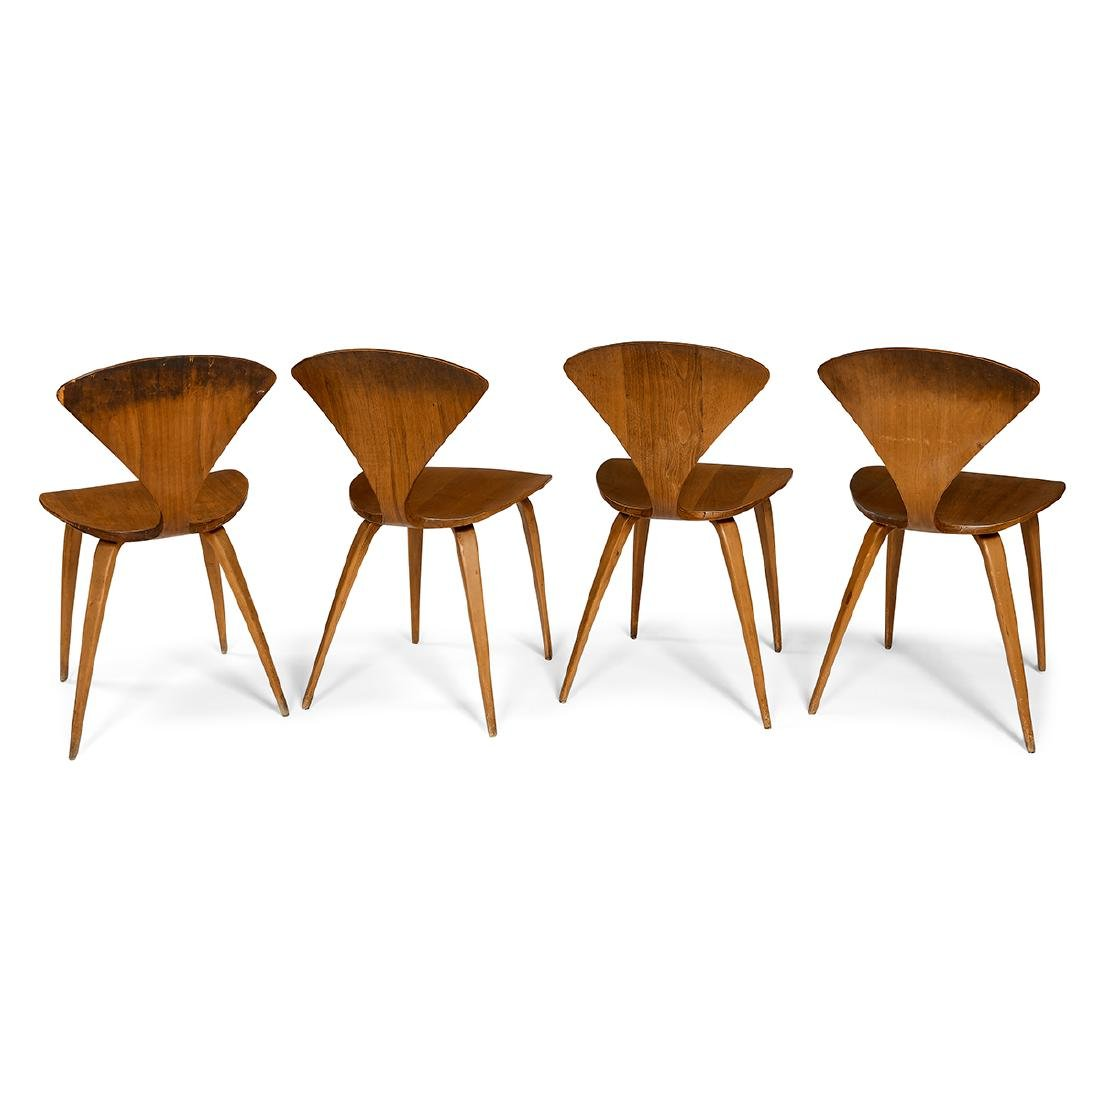 Norman Cherner for Plycraft dining chairs, four - 2